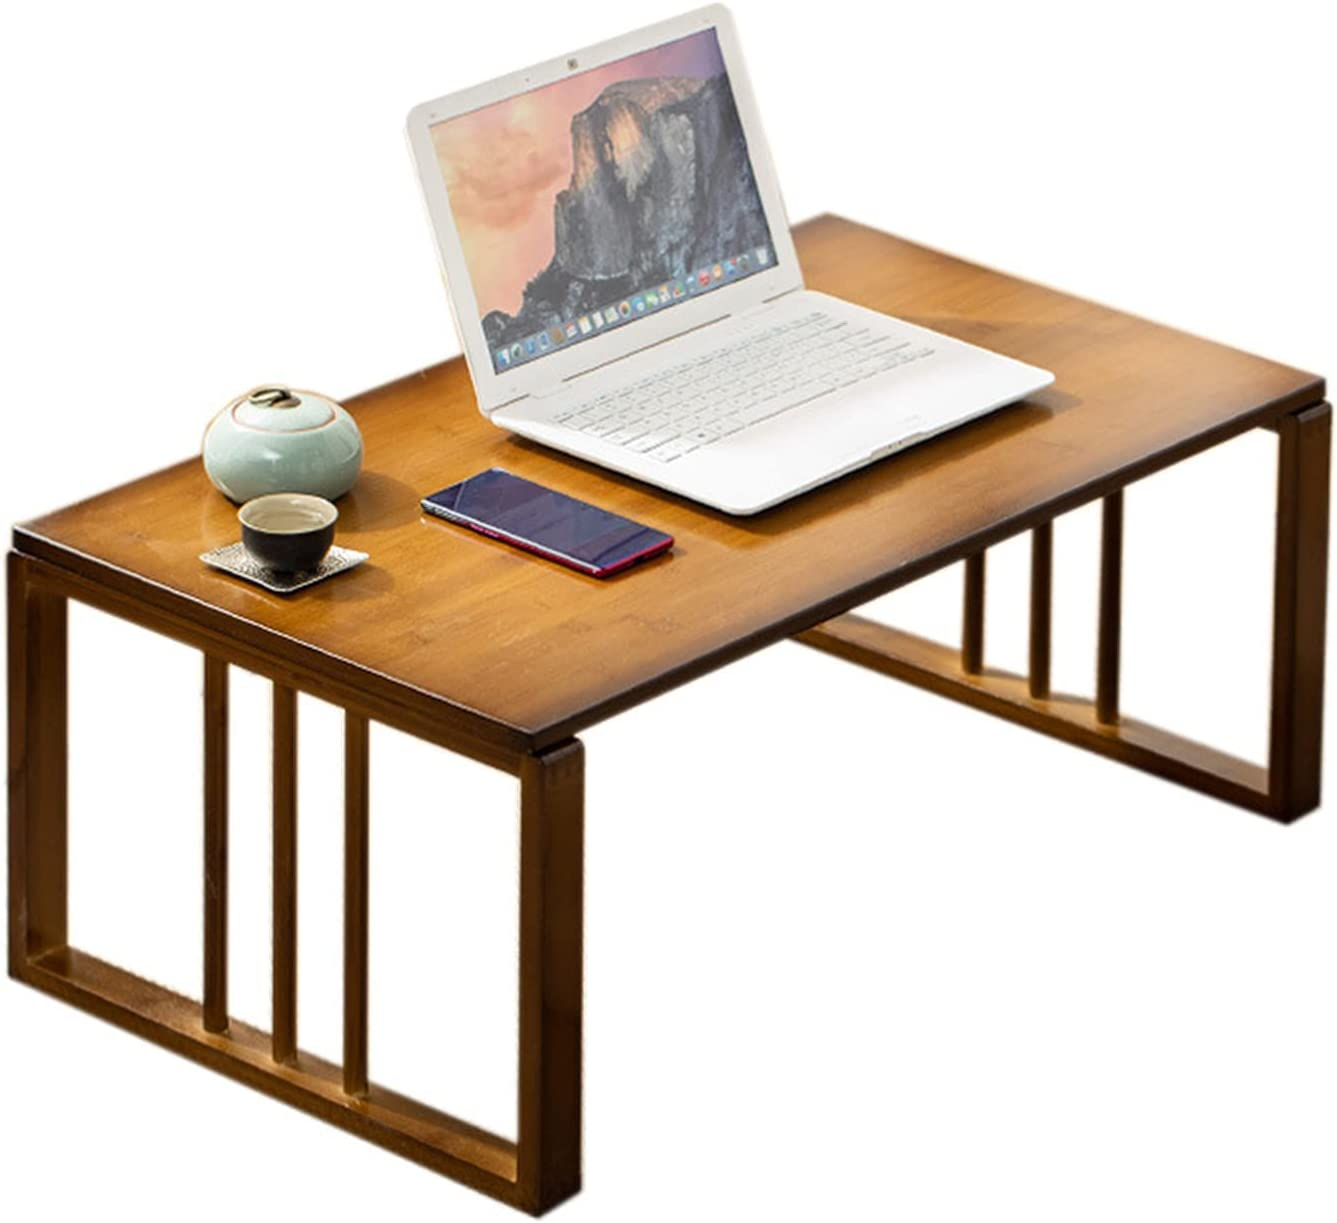 Household Surprise price Max 58% OFF Products Large Size Laptop Bed Foldable Tray Desk Tabl